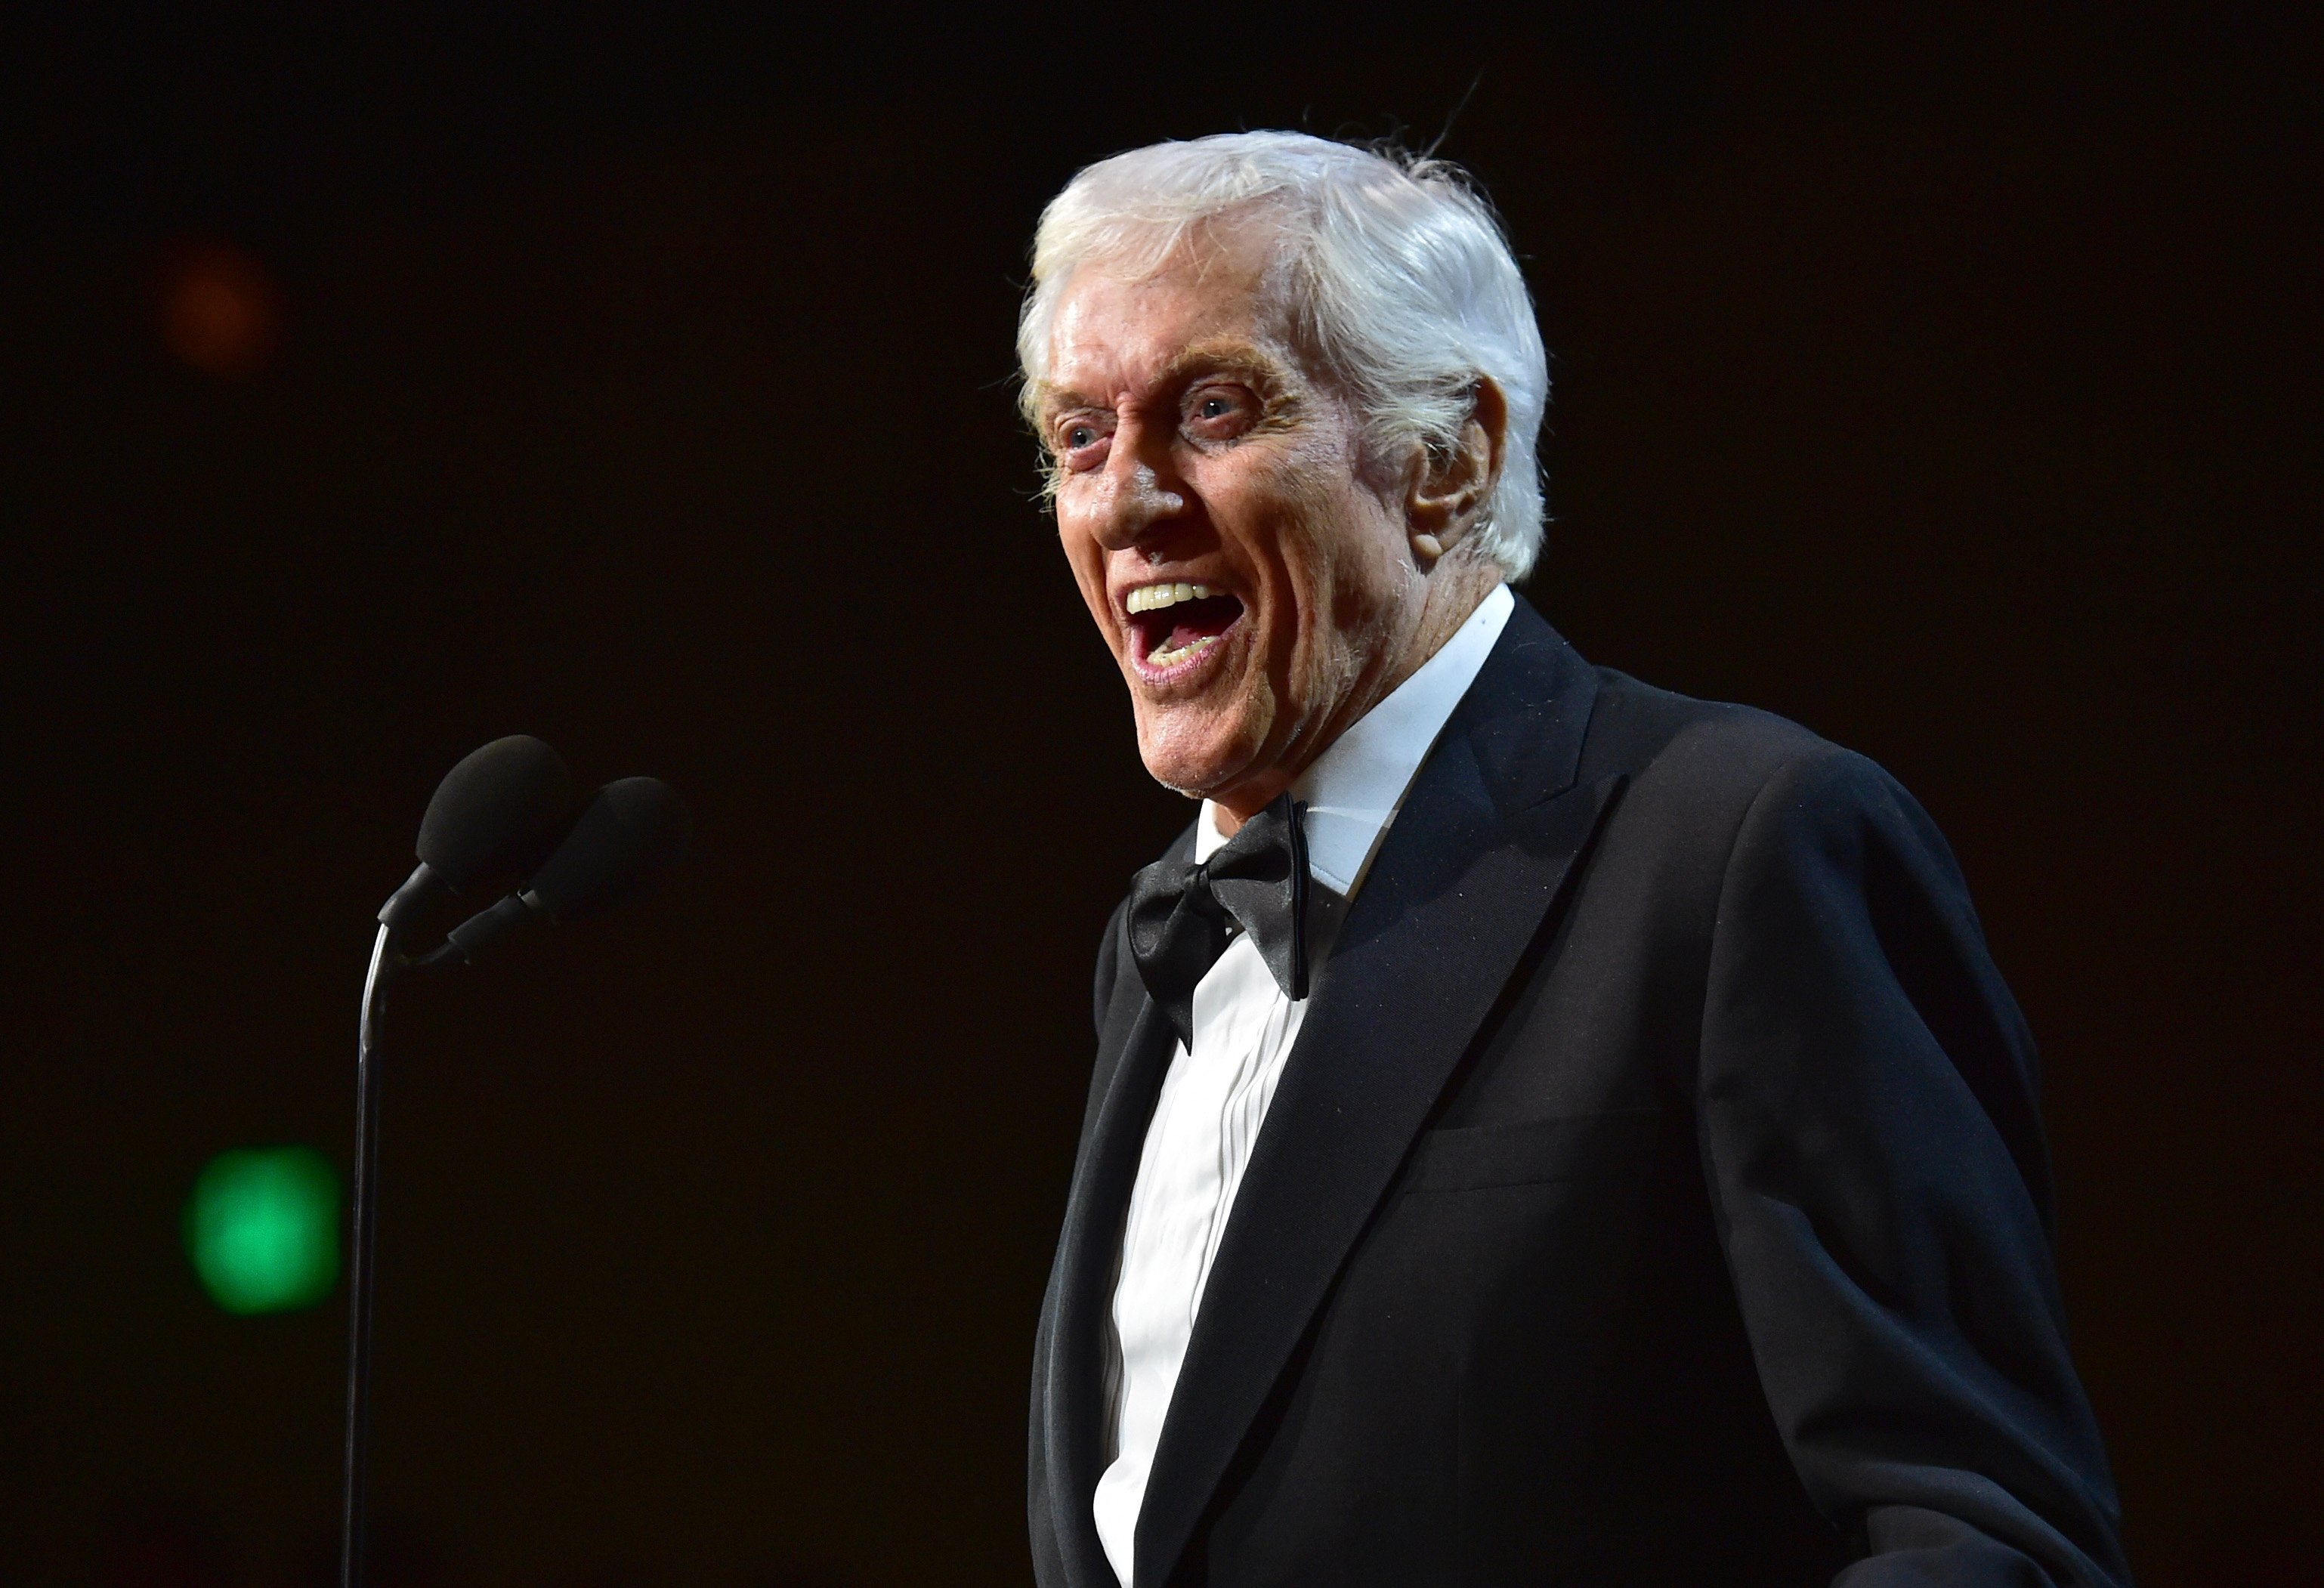 Dick Van Dyke attends the AMD British Academy Britannia Awards in Beverly Hills, California on October 27, 2017 | Photo: Getty Images